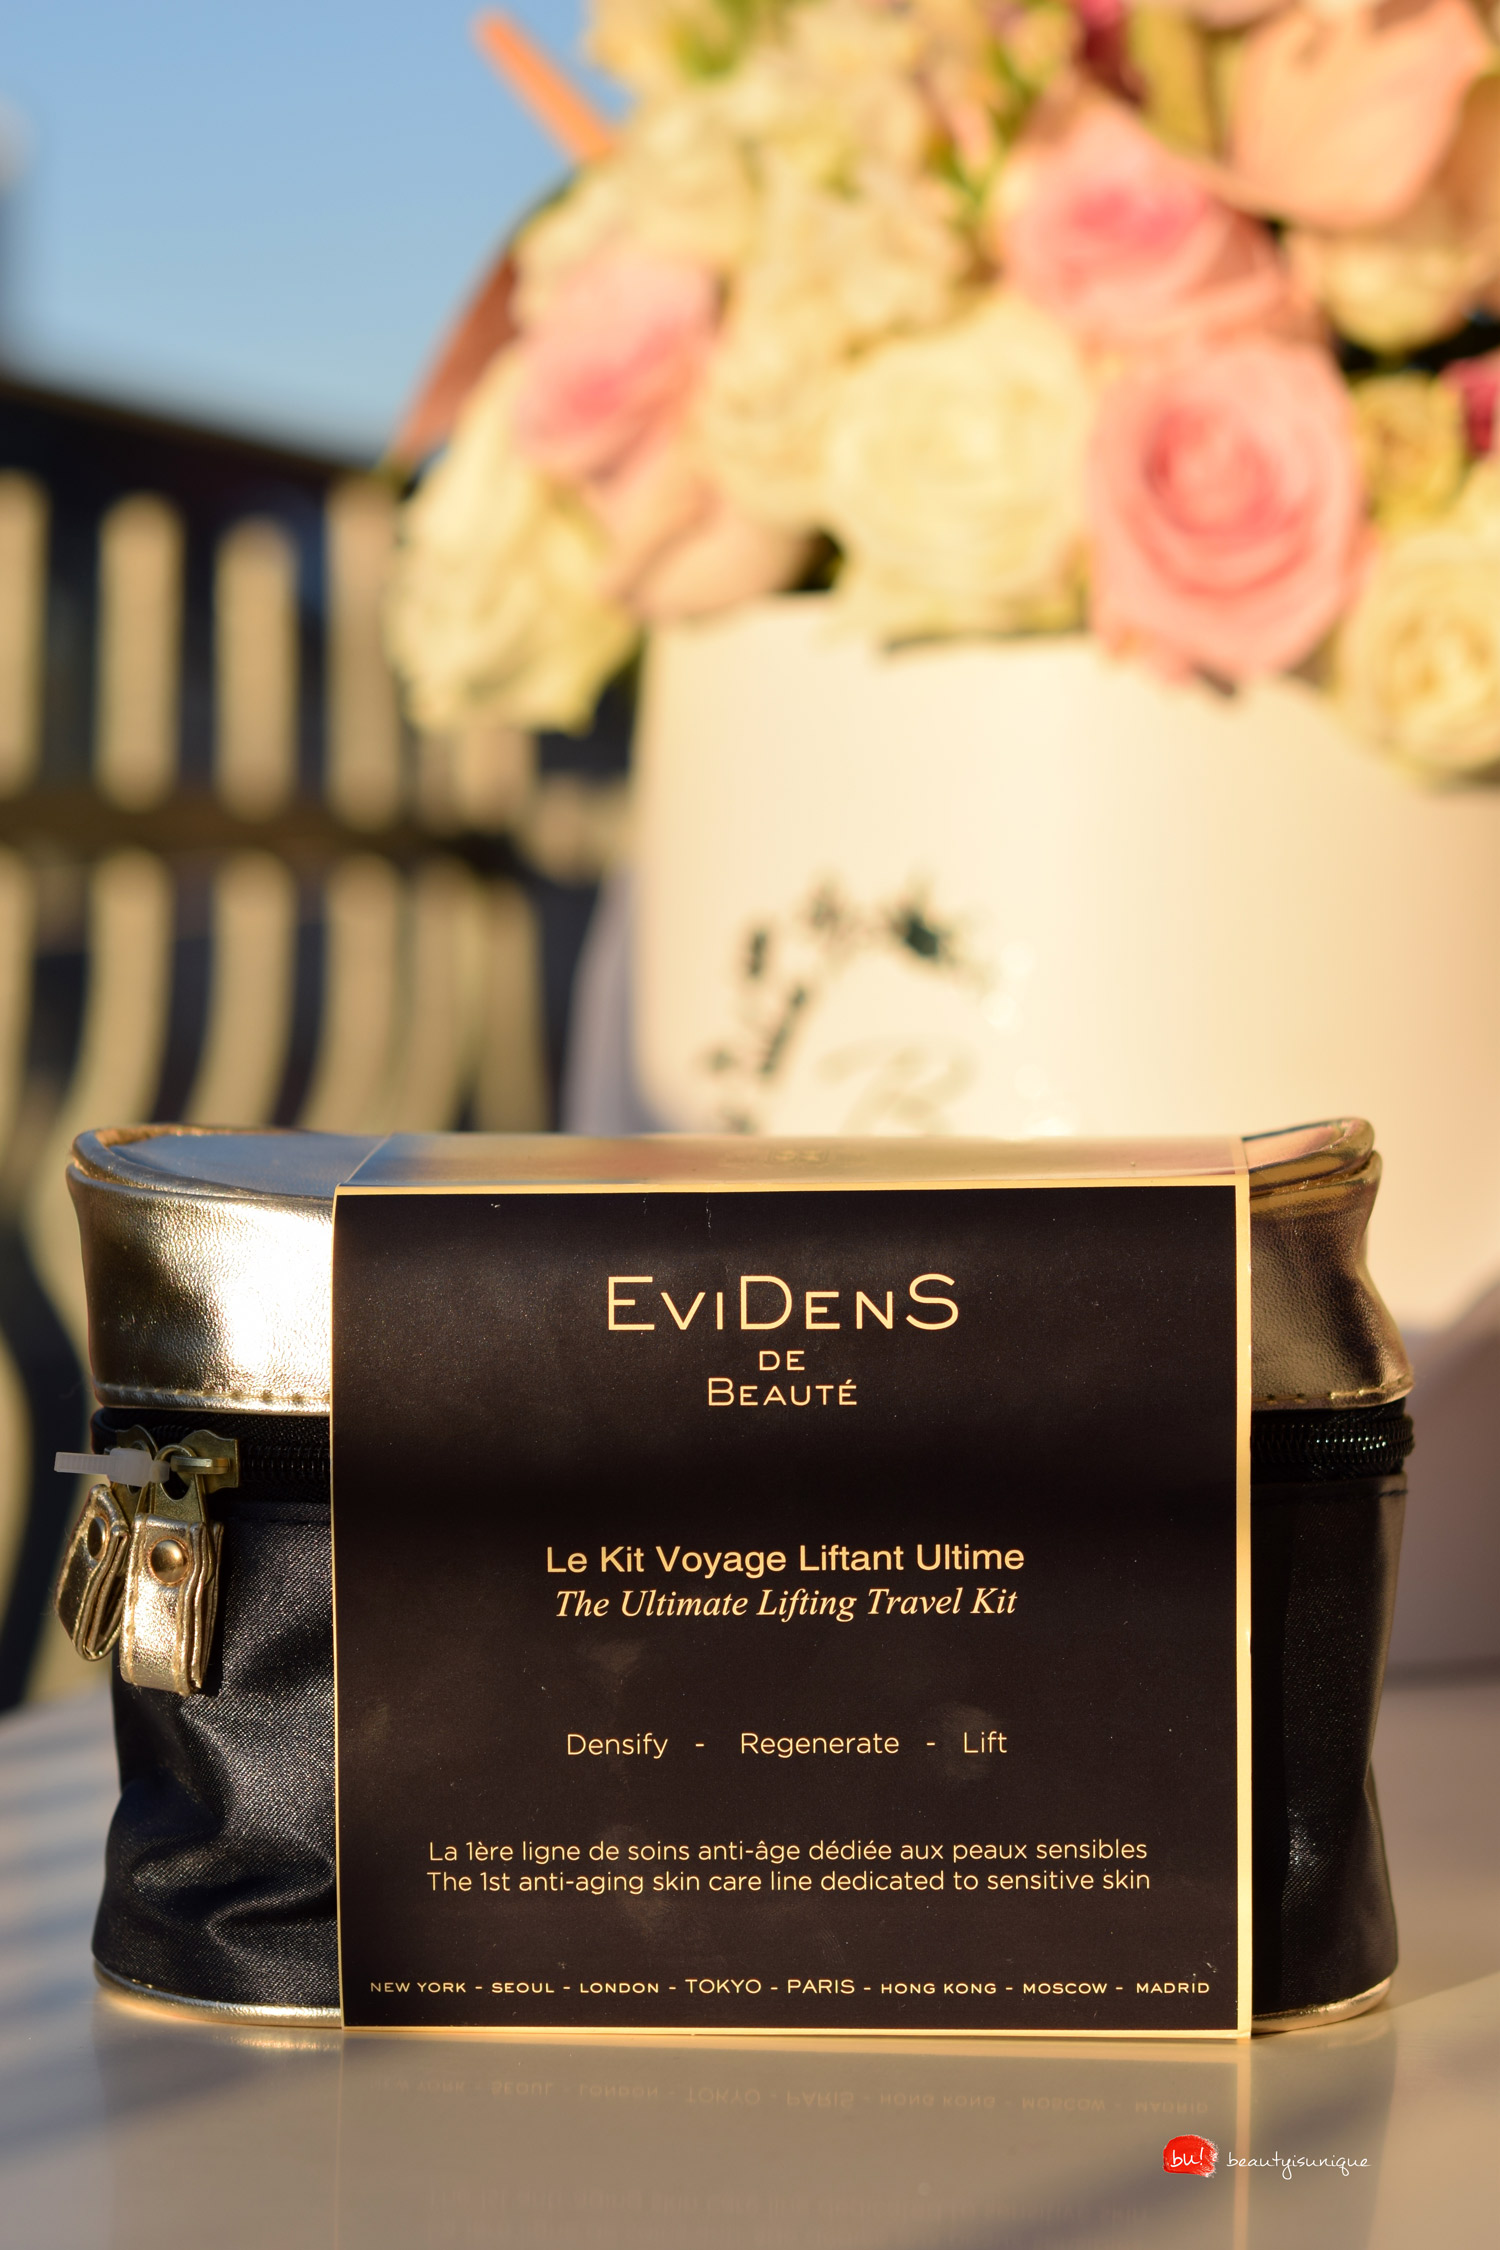 evidens-de-beaute-the-ultimate-lifting-travel-kit